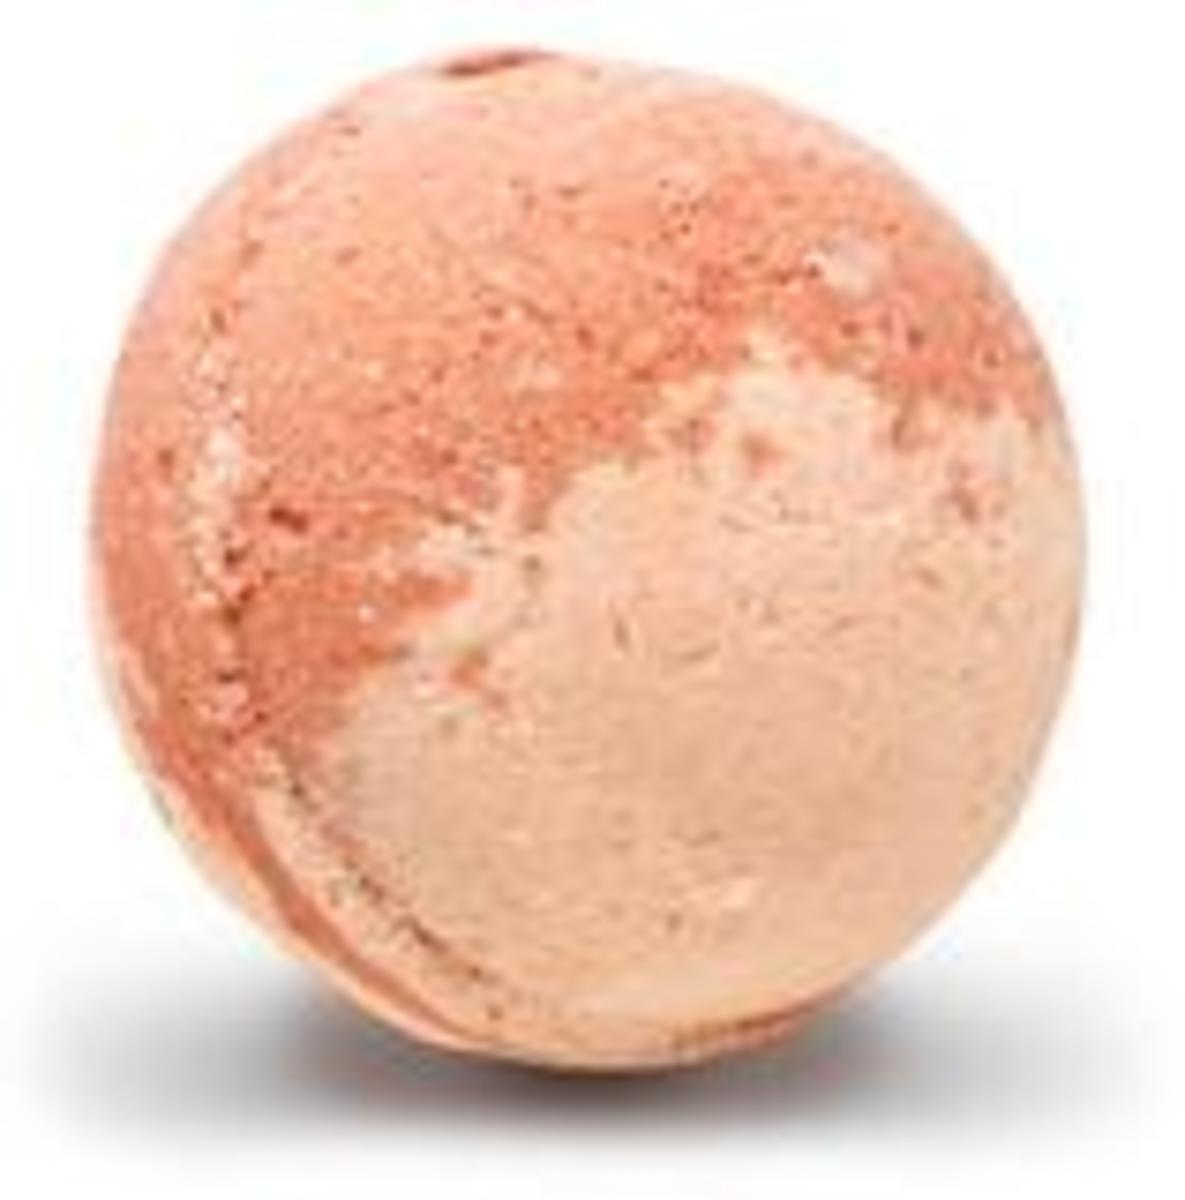 Rejuvenate bath bomb as sold on bubbly belle.